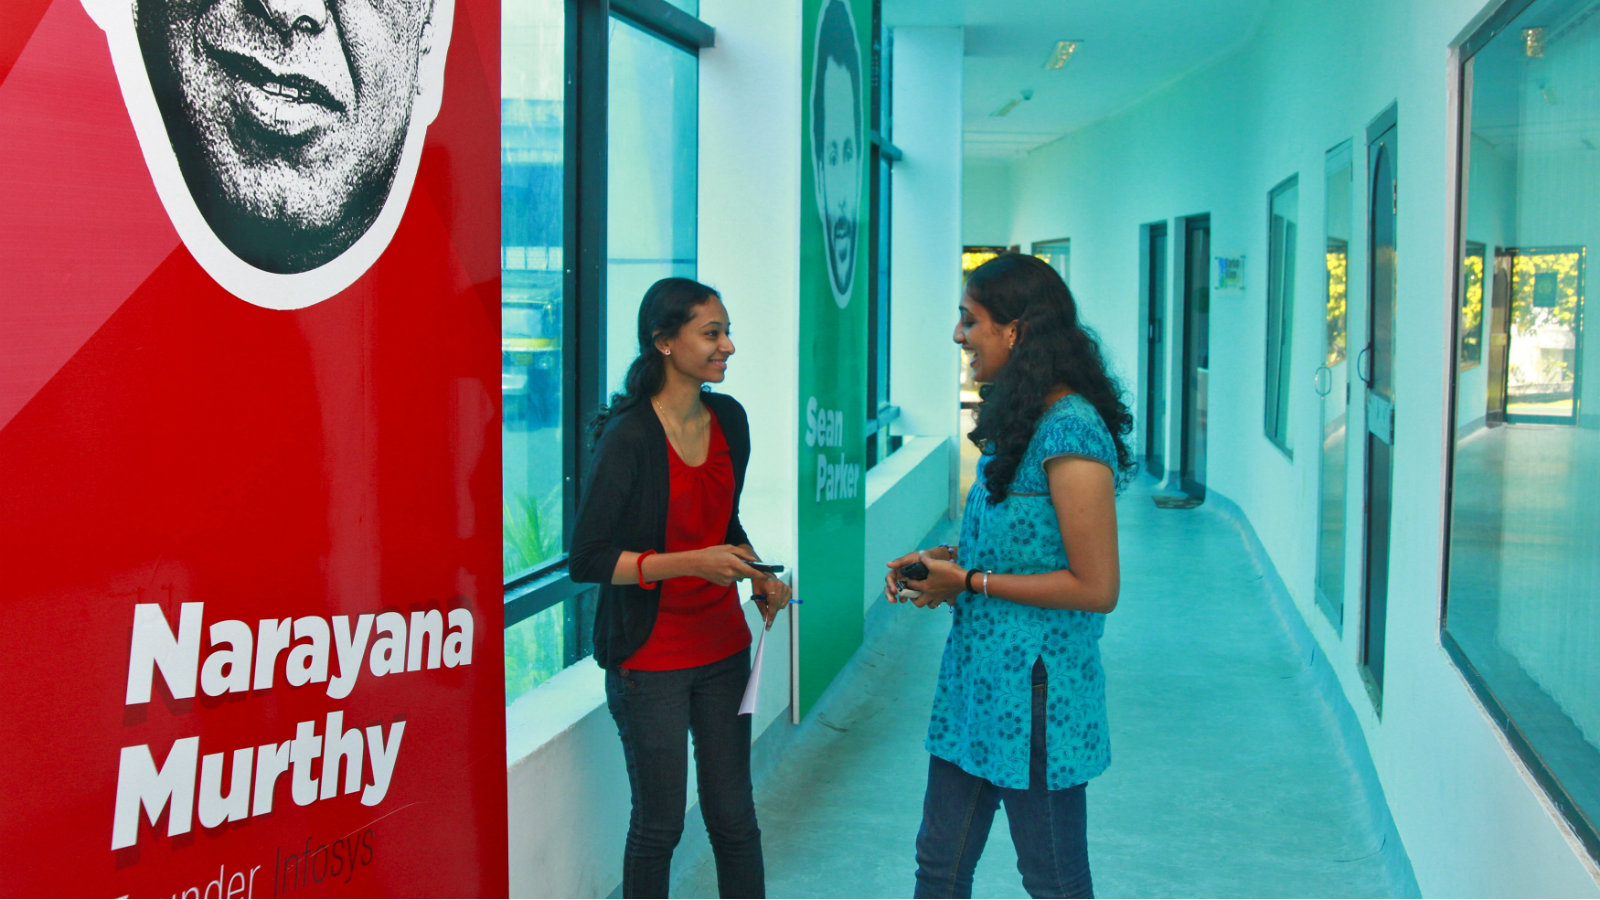 Employees talk as they stand next to flex board poster of Infosys founder Narayana Murthy at the Start-up Village in Kinfra High Tech Park in the southern Indian city of Kochi October 13, 2012. Three decades after Infosys, India's second-largest software service provider, was founded by middle-class engineers, the country has failed to create an enabling environment for first-generation entrepreneurs. Startup Village wants to break the logjam by helping engineers develop 1,000 Internet and mobile companies in the next 10 years. It provides its members with office space, guidance and a chance to hobnob with the stars of the tech industry. But critics say this may not even be the beginning of a game-changer unless India deals with a host of other impediments - from red tape to a lack of innovation and a dearth of investors - that are blocking entrepreneurship in Asia's third-largest economy. To match Feature INDIA-TECHVILLAGE/ Picture taken October 13, 2012.